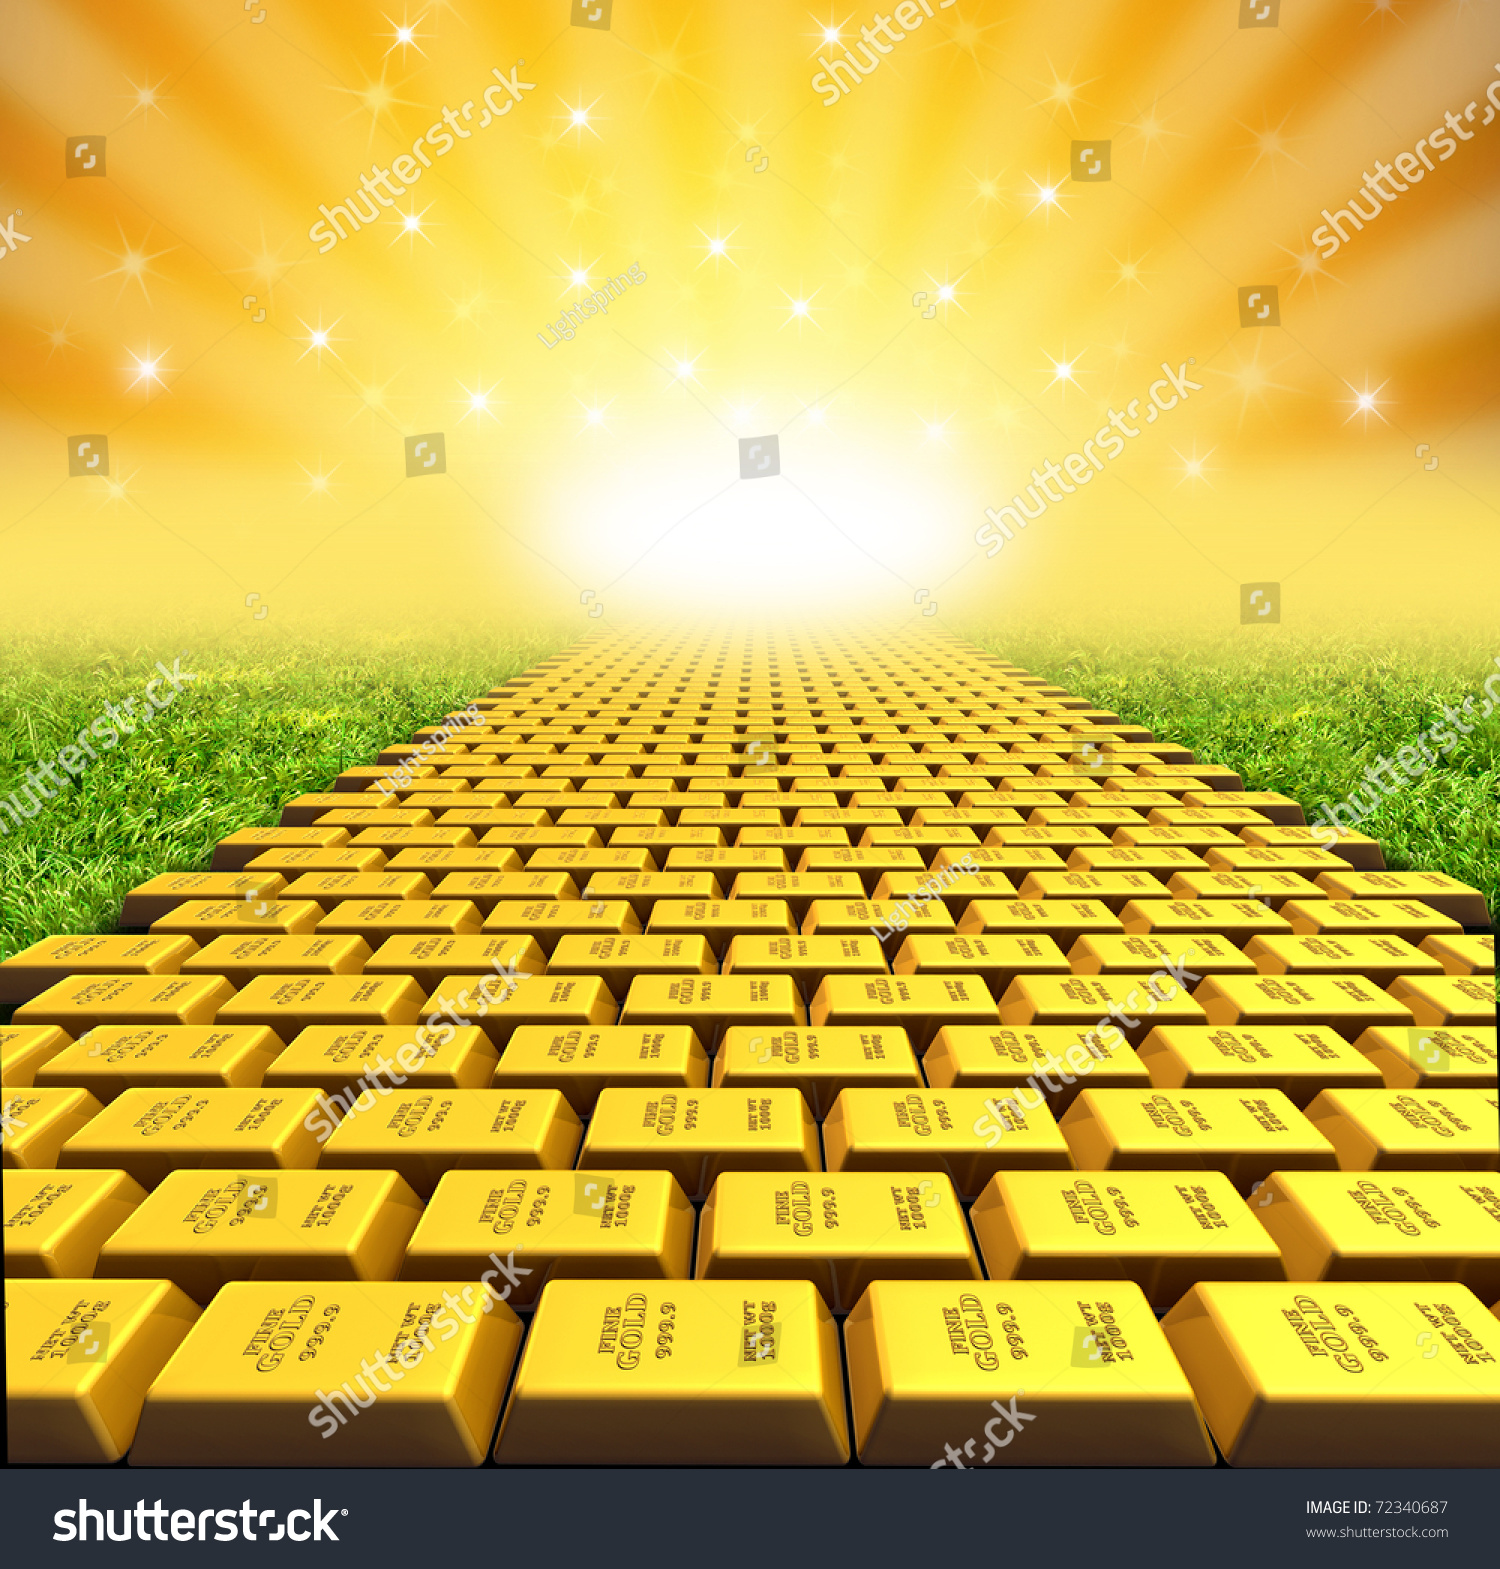 Yellow Brick Road Symbol Represented By Stock Illustration